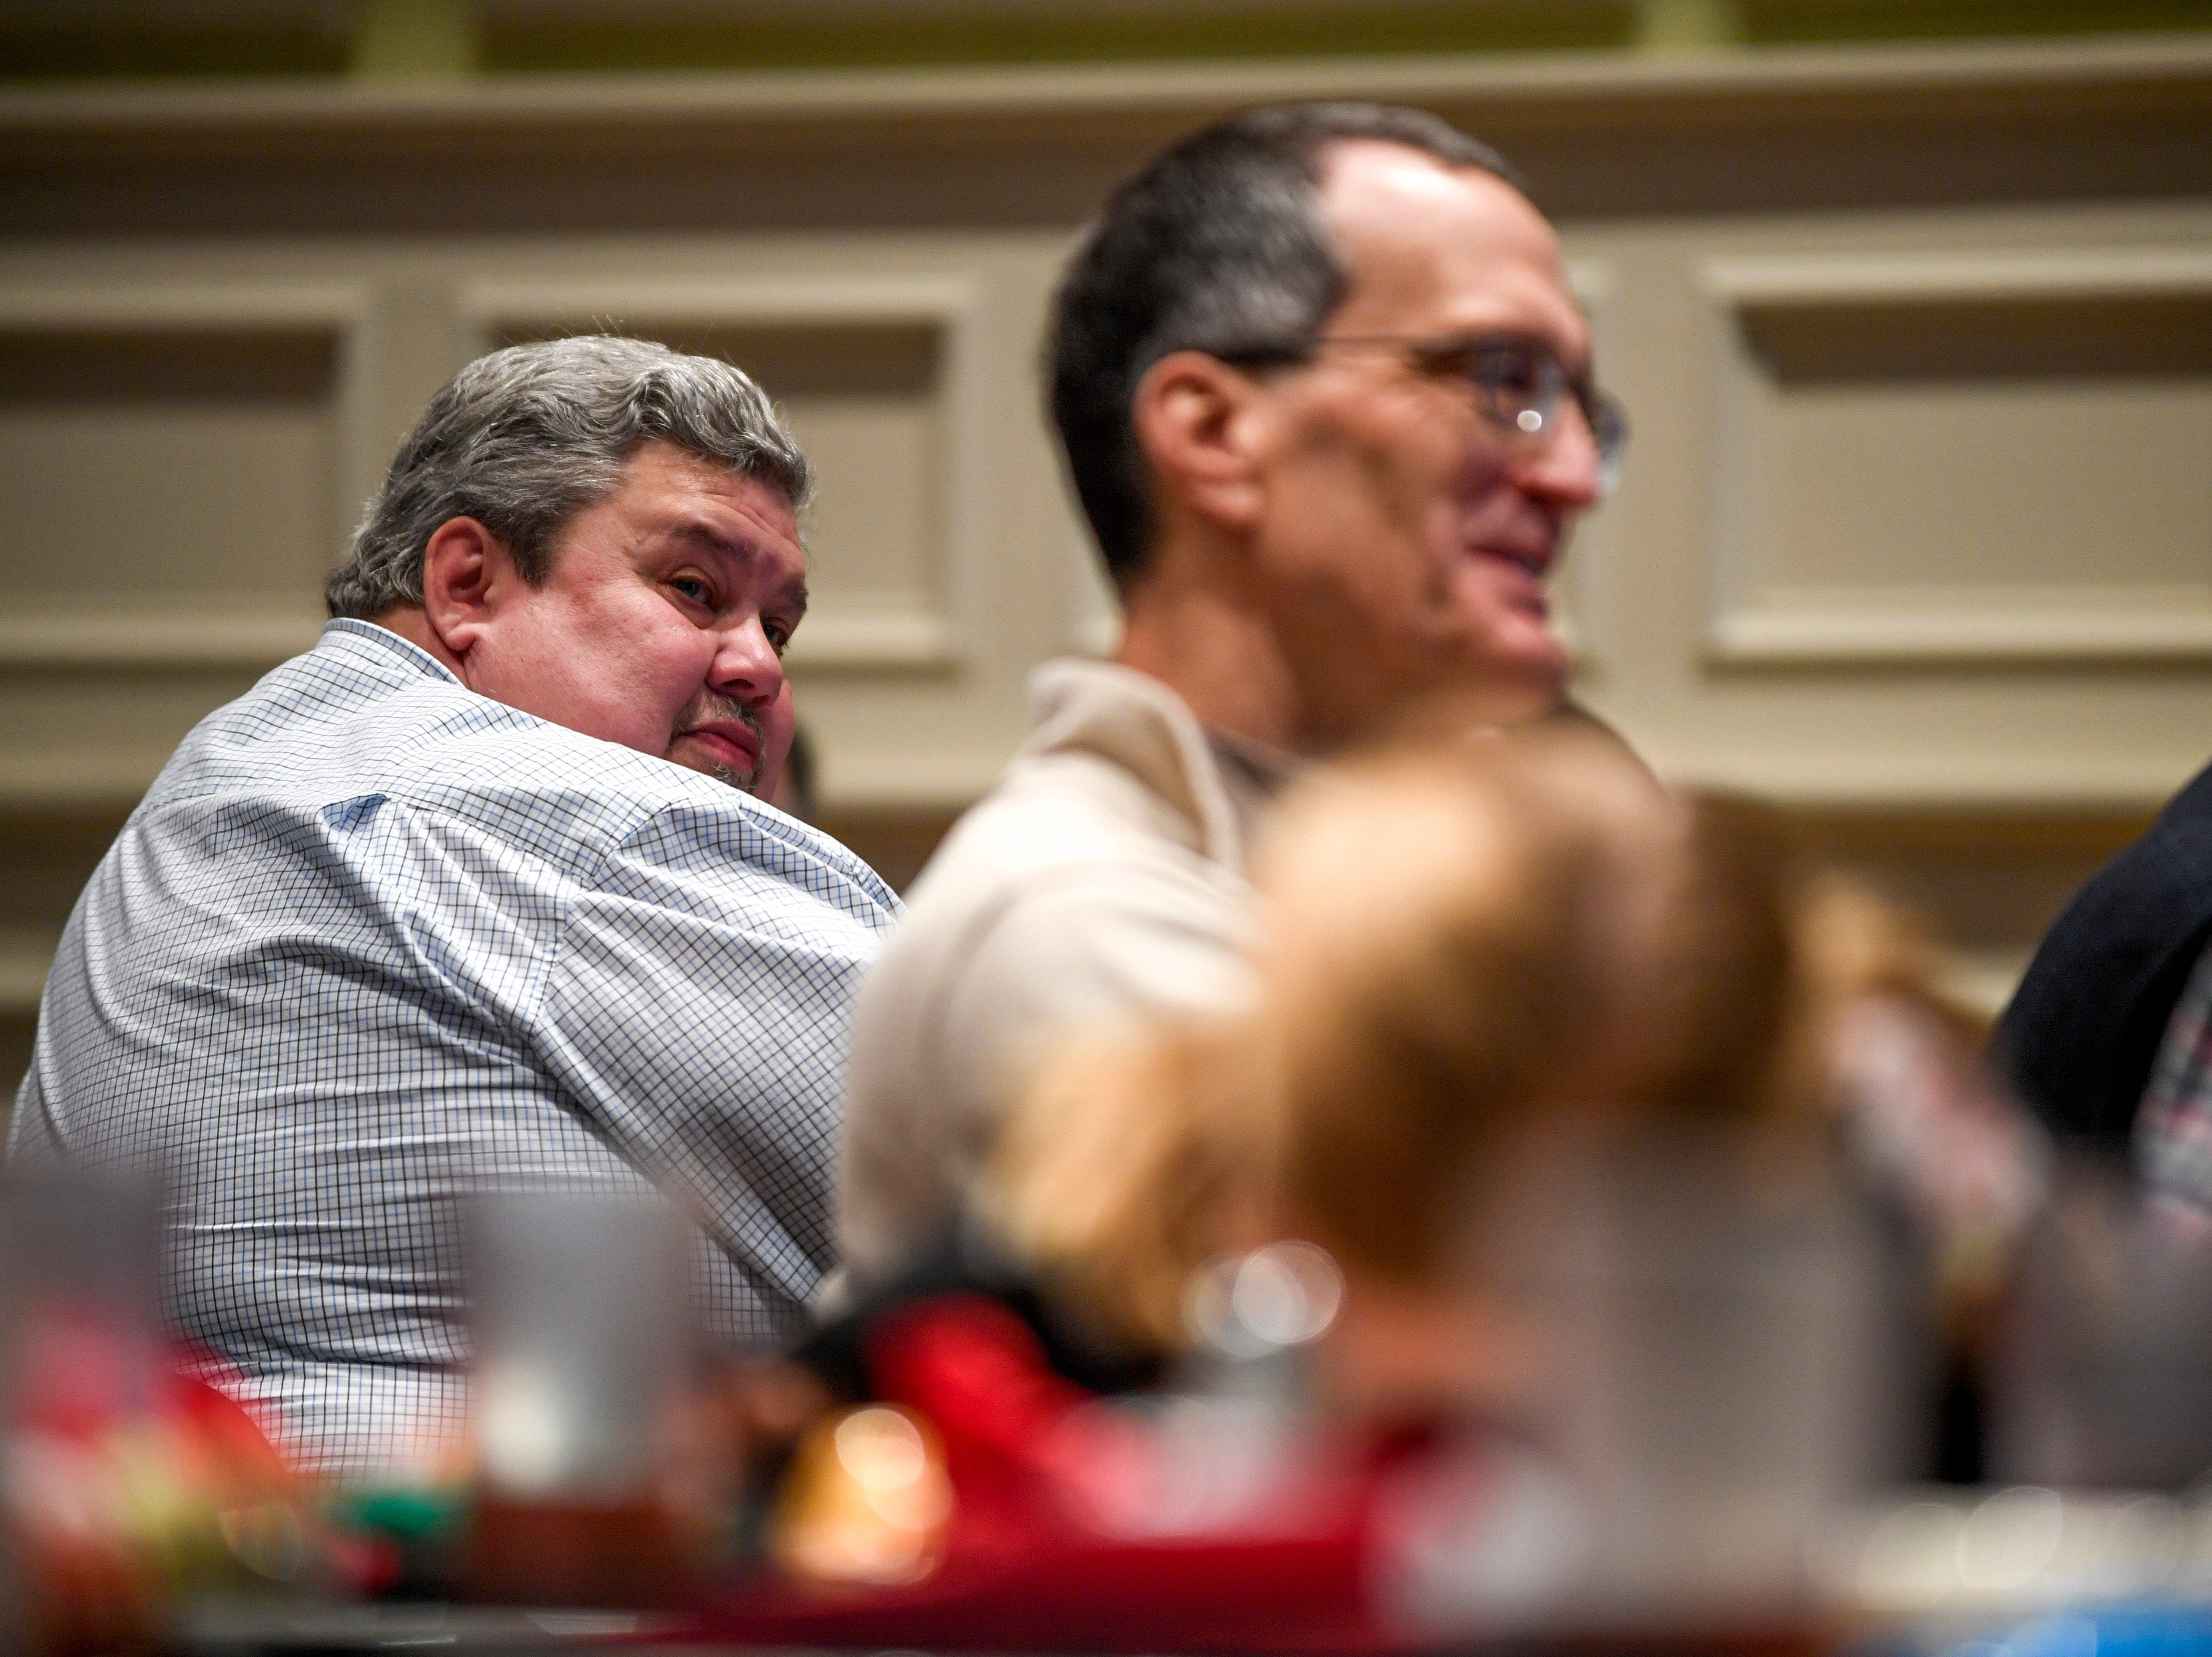 Guests listen to speakers at the podium during the monthly First Friday Forum at First United Methodist Church in Jackson, Tenn., on Friday, Jan. 4, 2019.